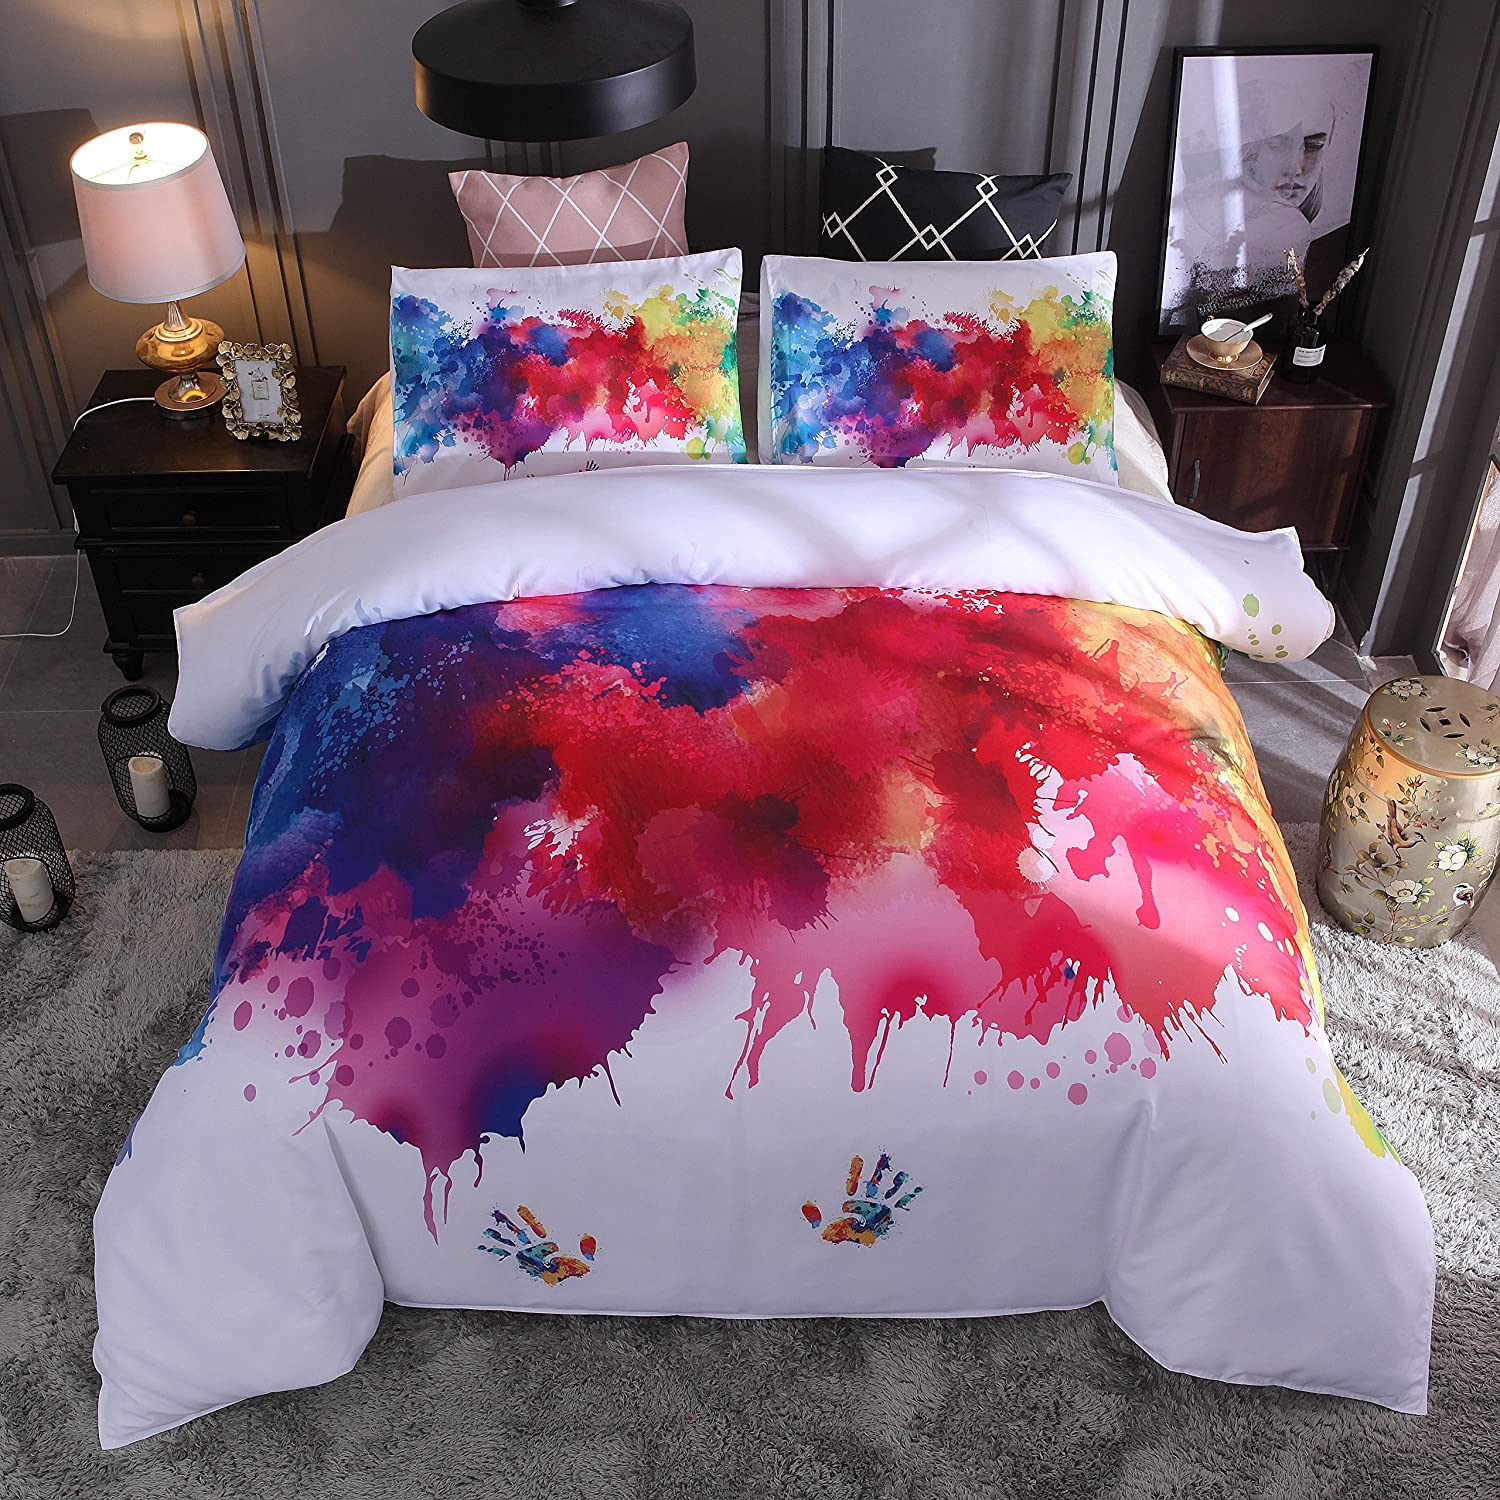 3D Abstract Printed 3-Piece Set, Vibrant Stains of Watercolor Paint Splatters Brushstrokes Dripping Liquid Art, with 2 Pillow Shams Set, Red Yellow Blue Purple Orange,Black,200 * 200Cm [Energy Class A] YC DOLL